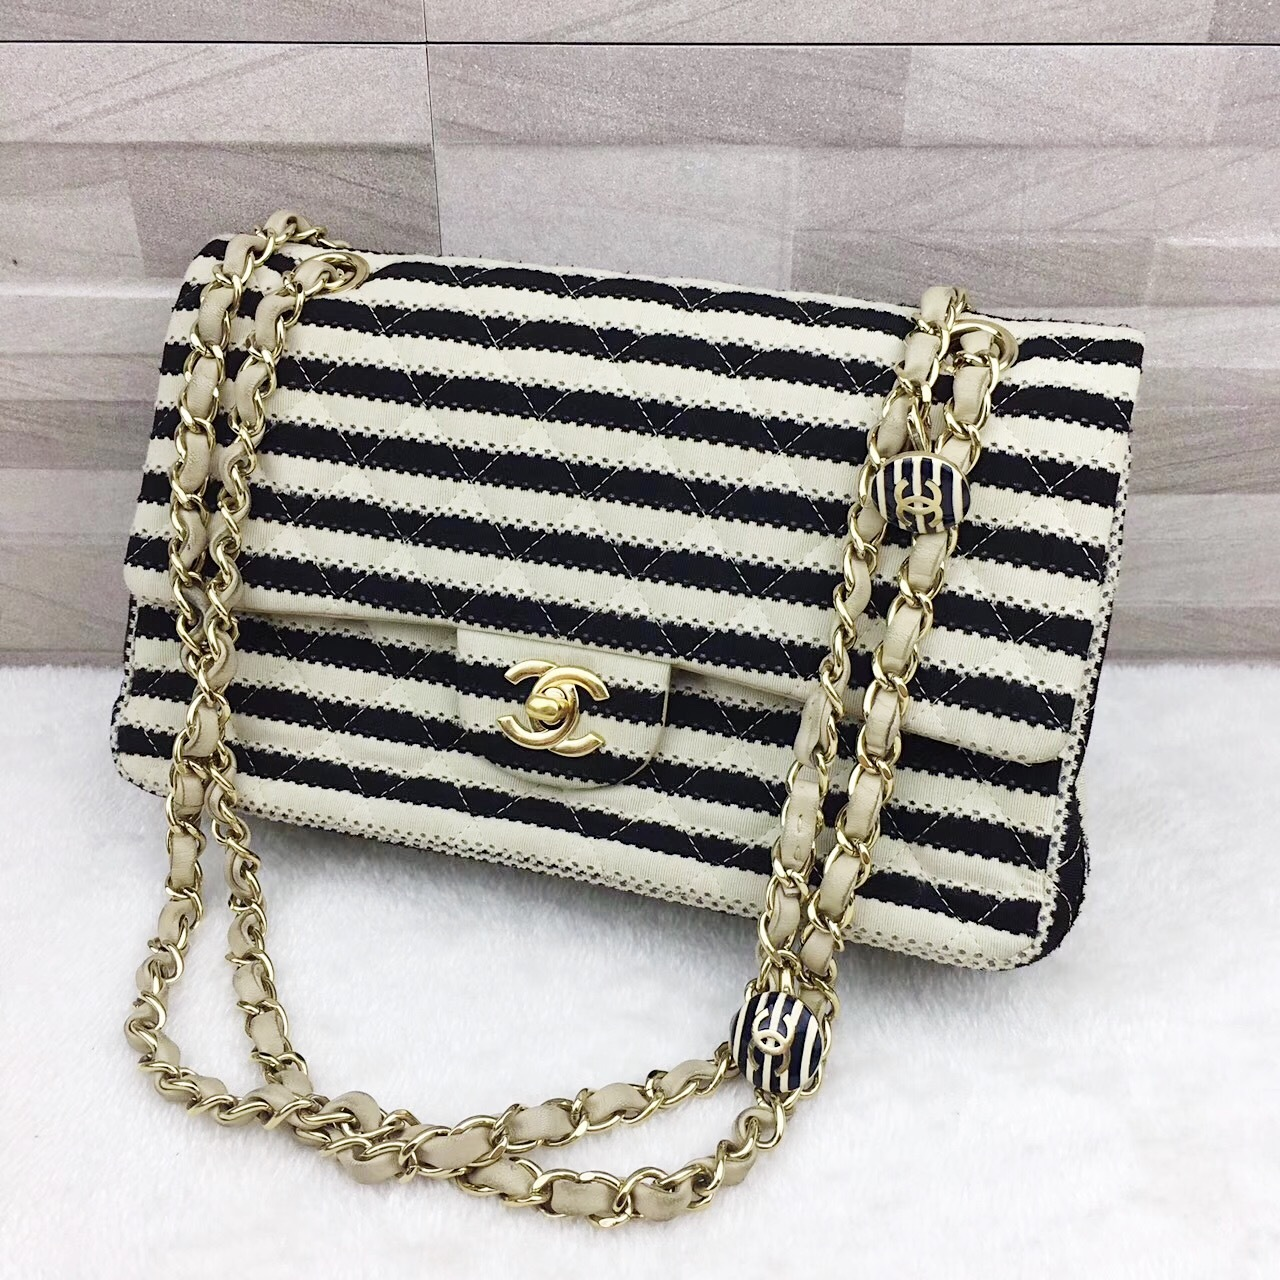 AUTHENTIC CHANEL LIMITED EDITION BLACK CREME STRIPED SAILOR JERSEY FLAP BAG GHW